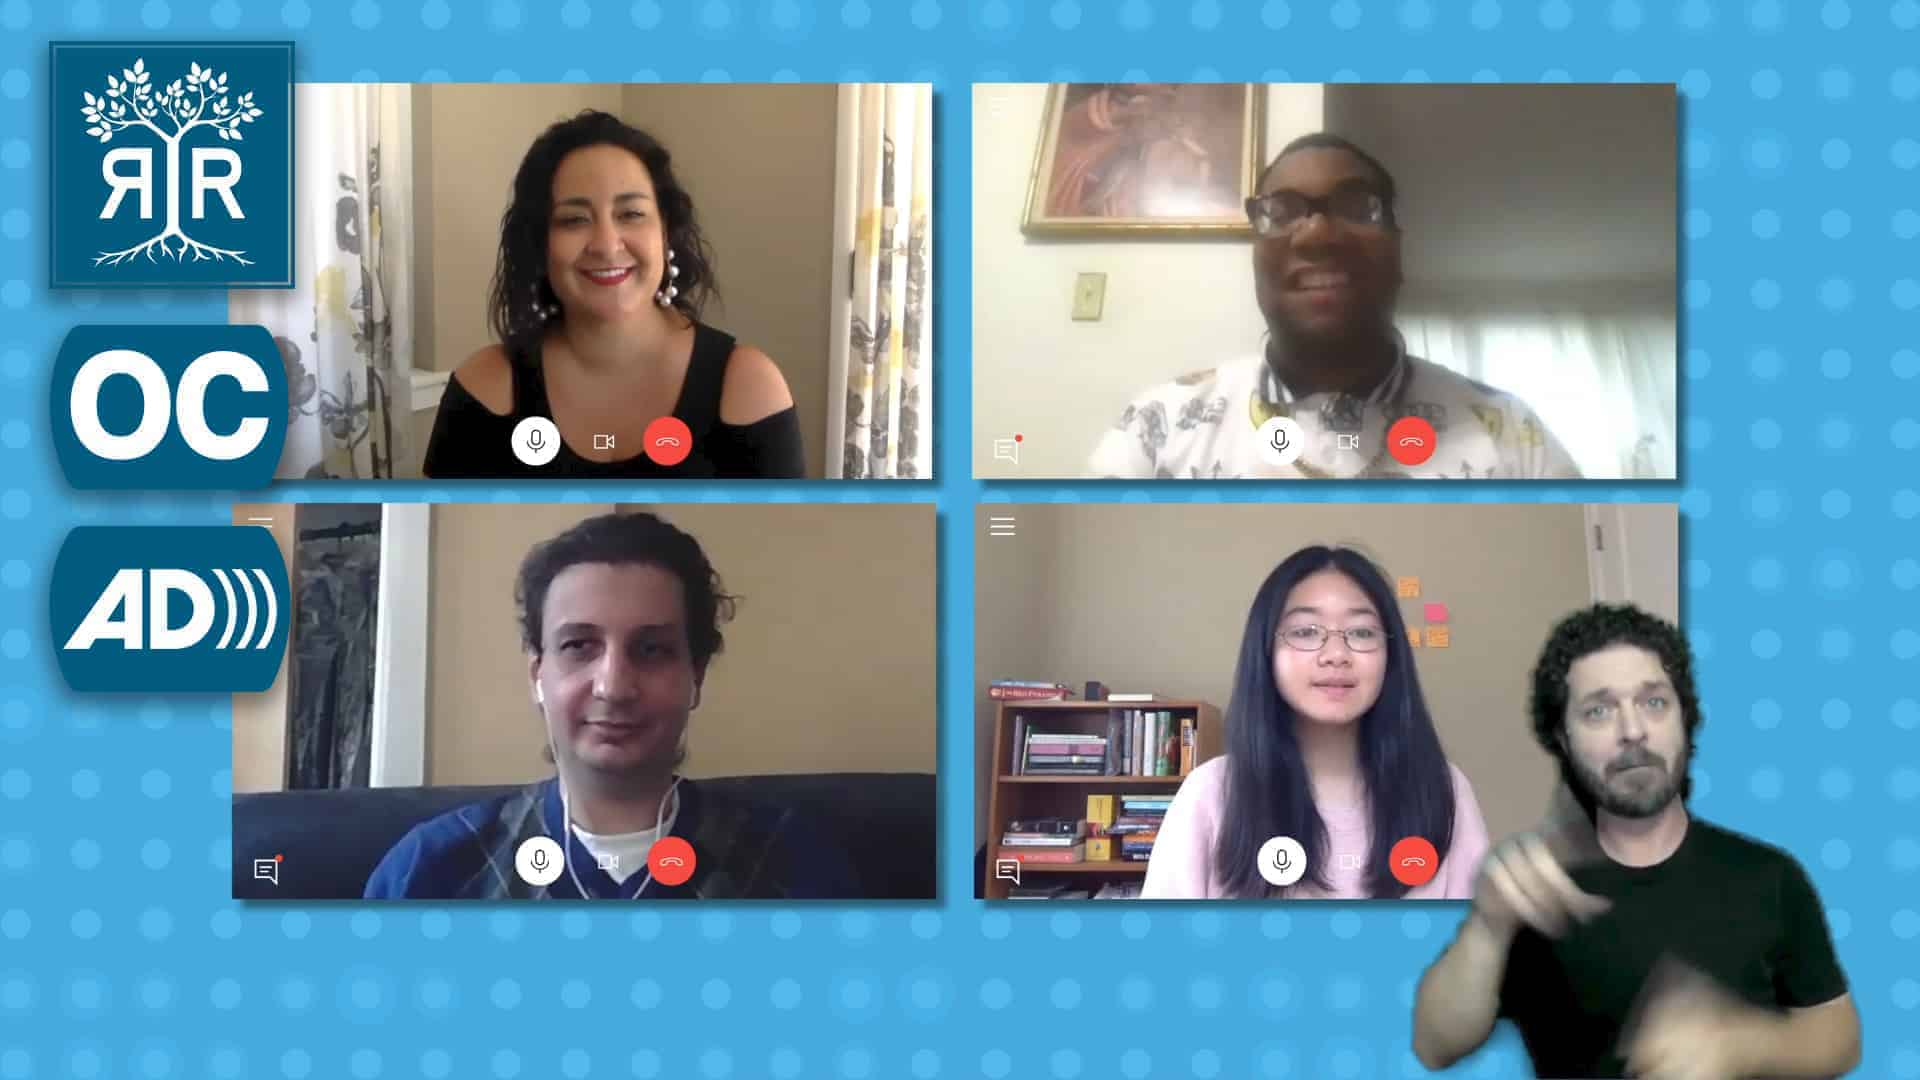 Four people on a video call. An ASL interpreter signs in the lower right corner. Rooted in Rights logo and icons for Open Captions and Audio Description are on the left.